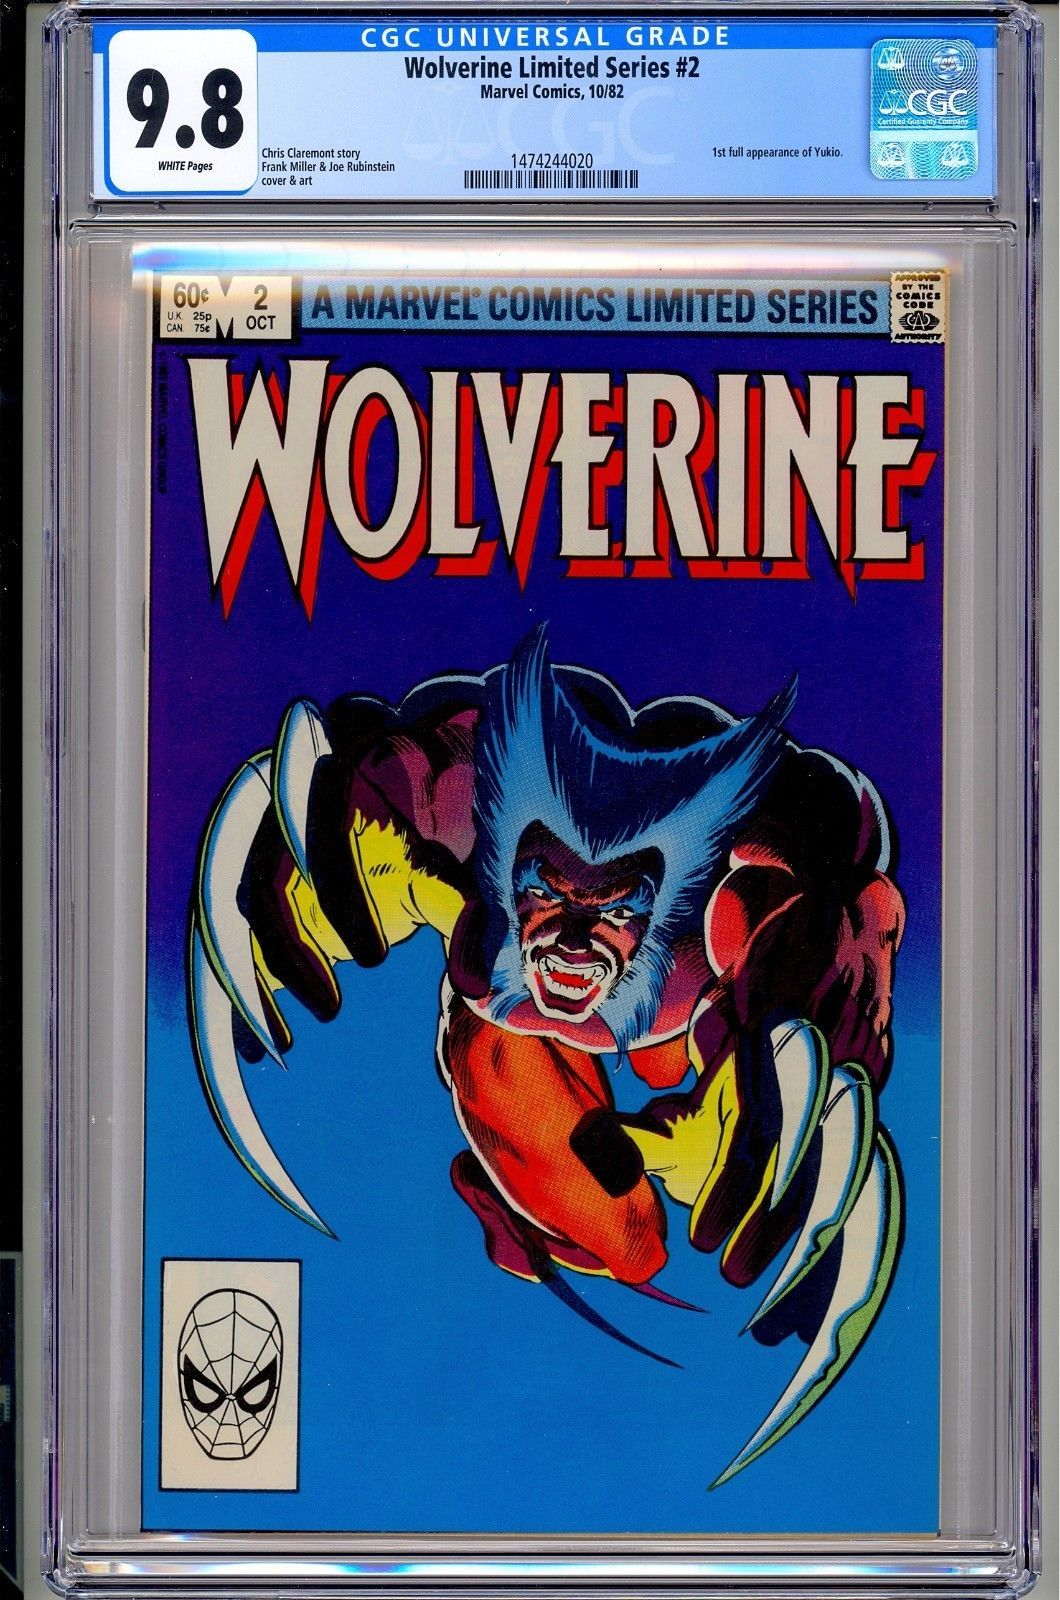 93c74a22685 certified #graded #cgc #cpgx #art #DC #Marvel #comic Wolverine ...